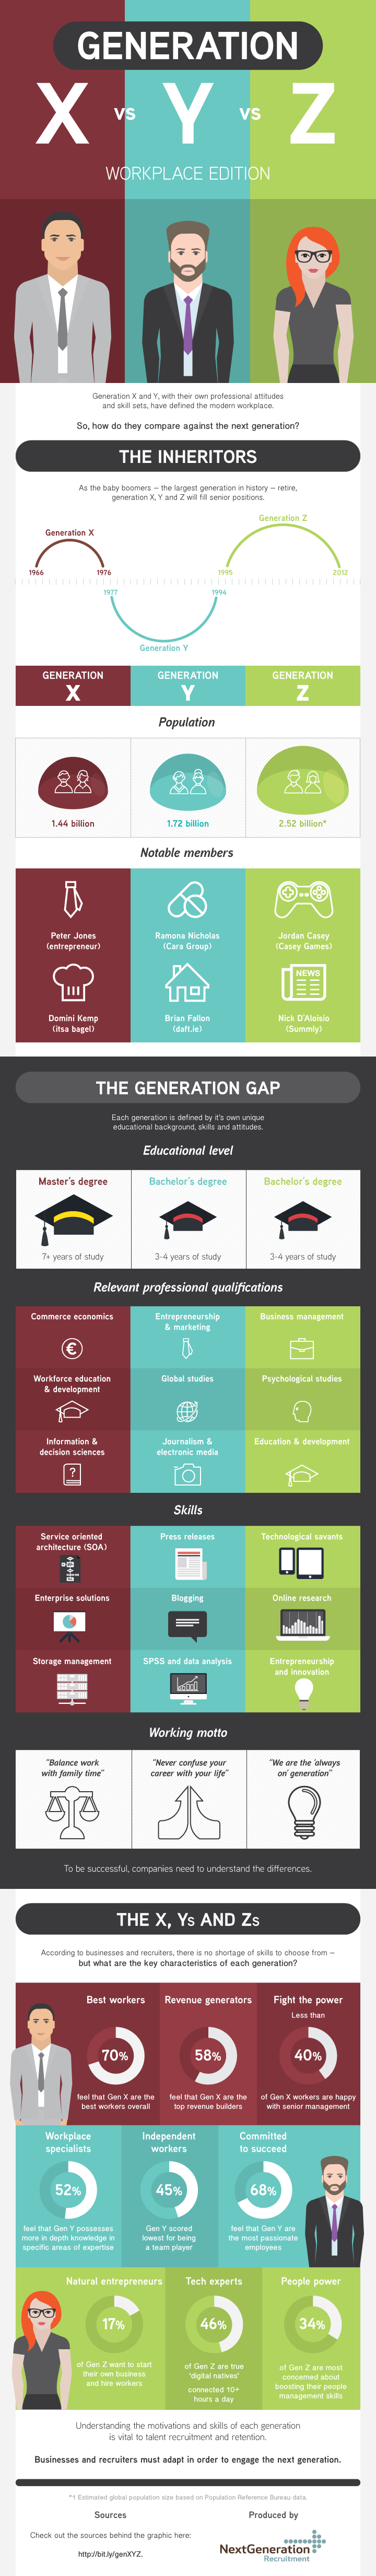 infographic a comparison of generation x y and z at the click to view enlarged version